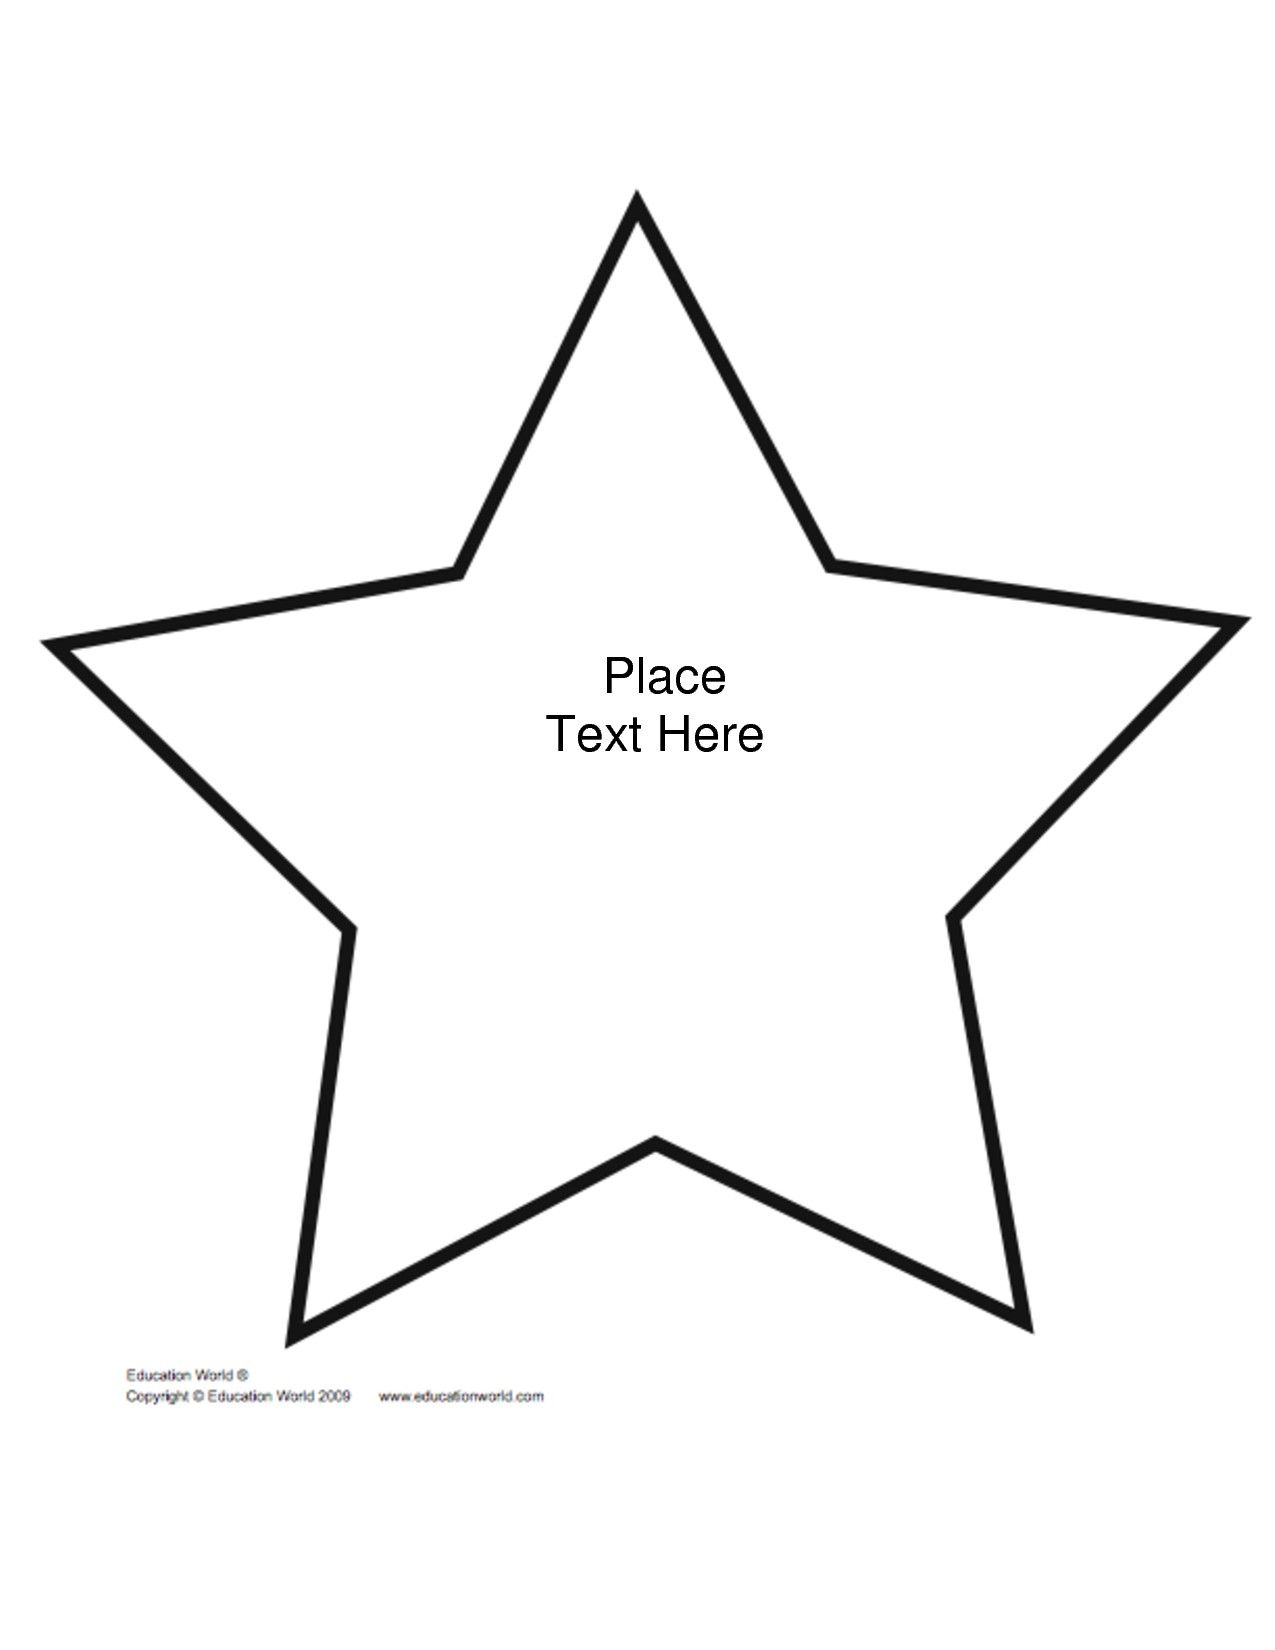 Printable Shape Star Template | Bedtime Story Bookfair ...